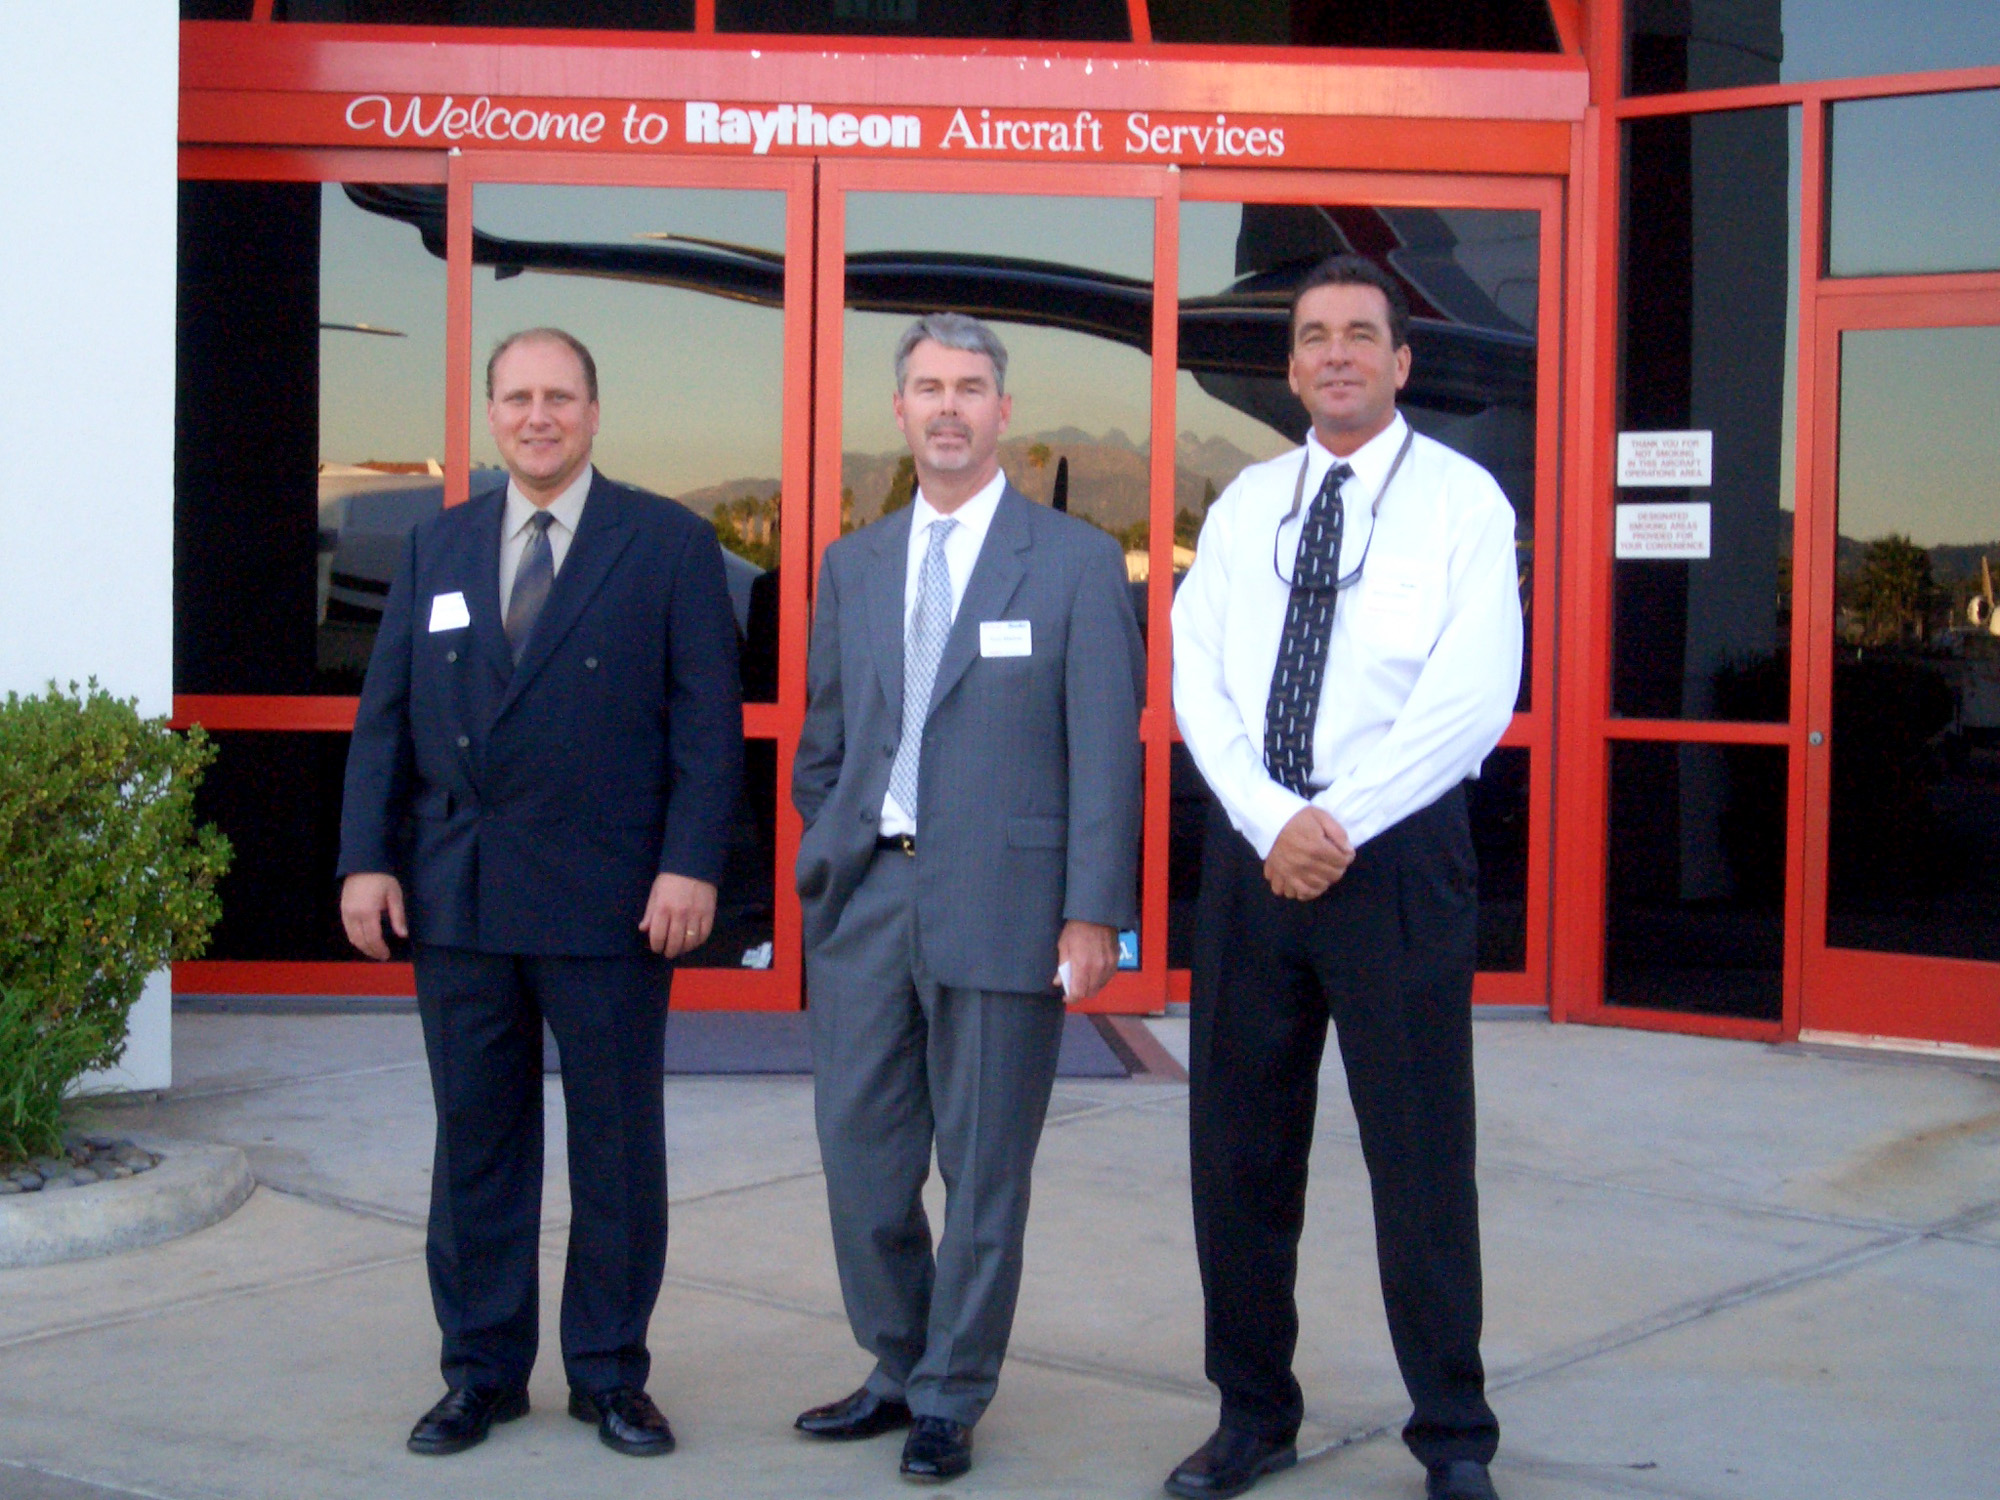 Raytheon Rocks on the Van Nuys Scene